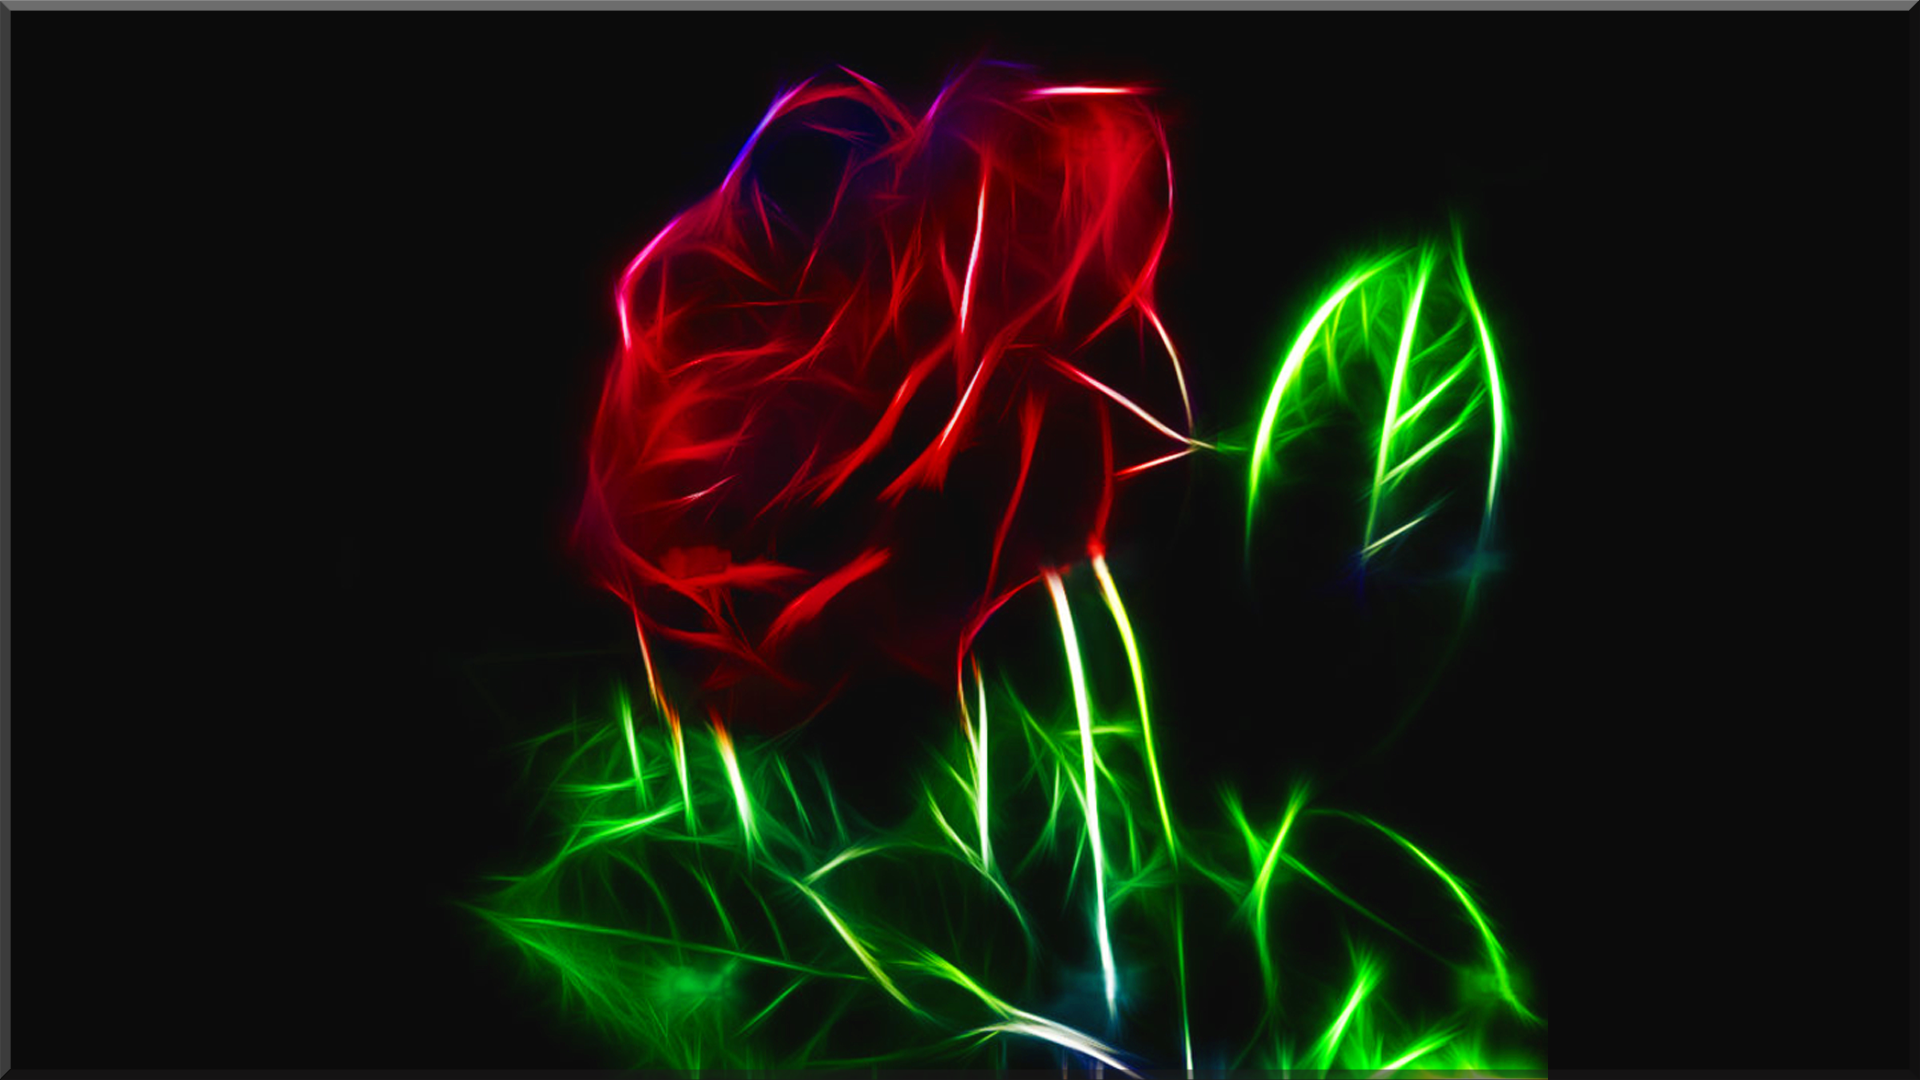 Neon Rose Wallpapers Top Free Neon Rose Backgrounds Wallpaperaccess